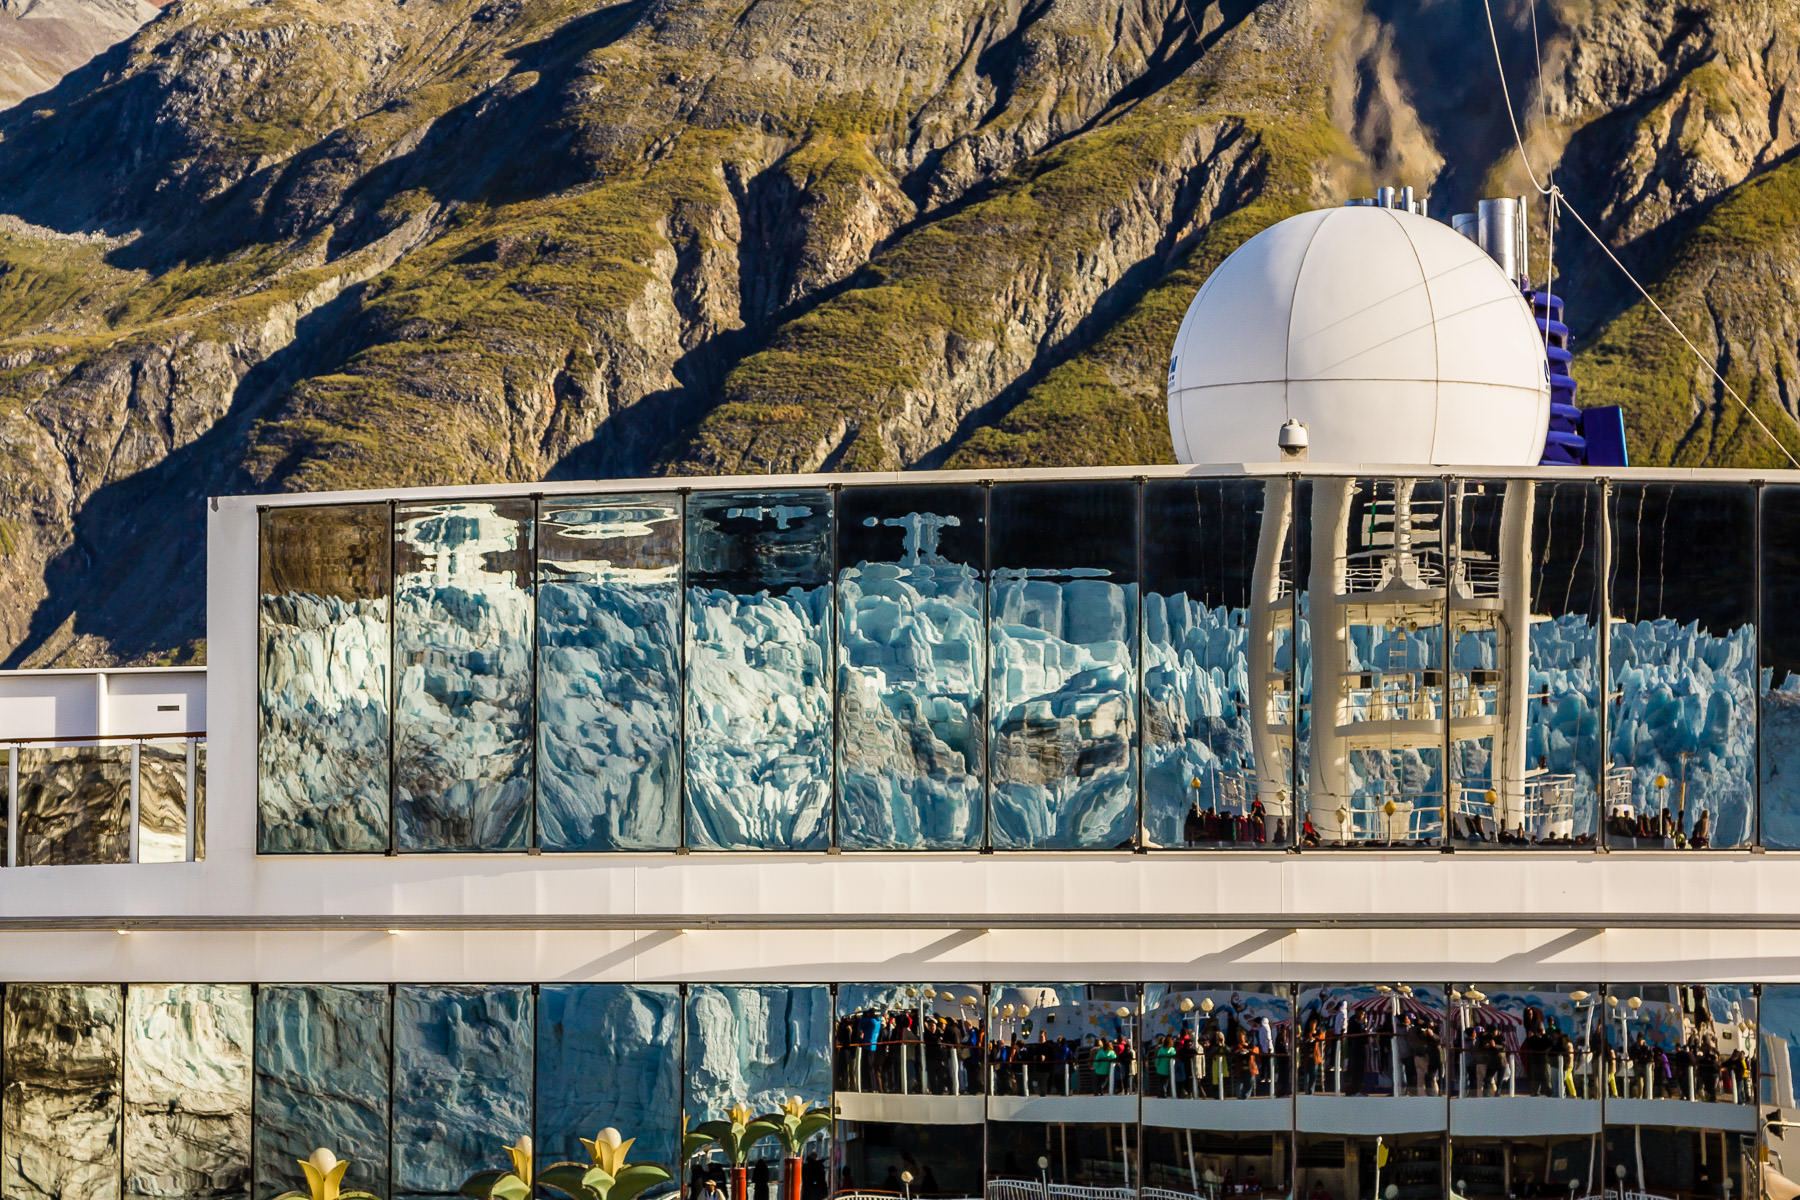 Alaska's Glacier Bay National Park's Margerie Glacier is reflected in windows aboard the cruise ship Norwegian Pearl.